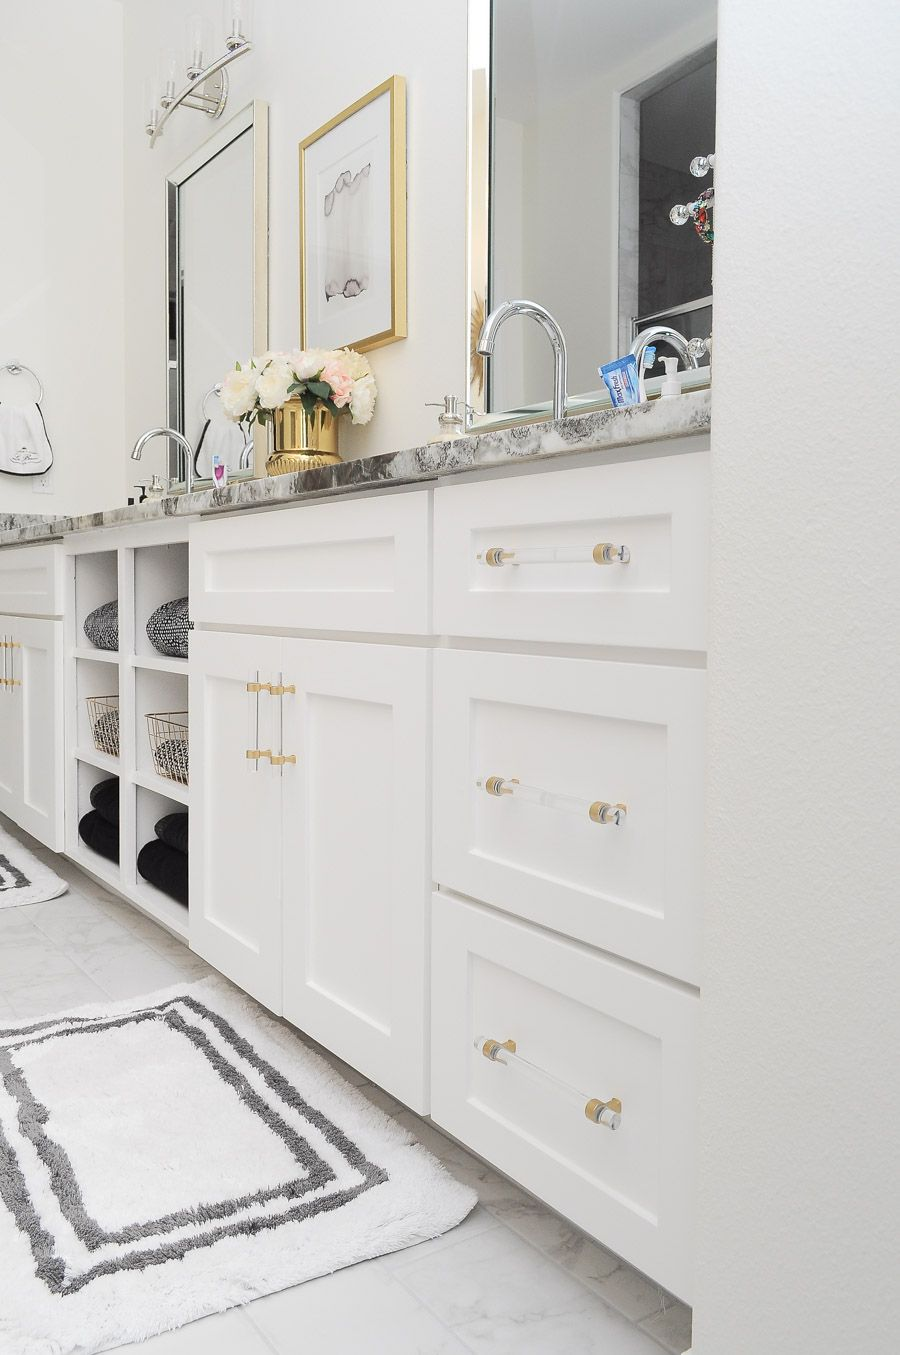 Diy Chrome To Brushed Brass Cabinet Hardware Brass Cabinet